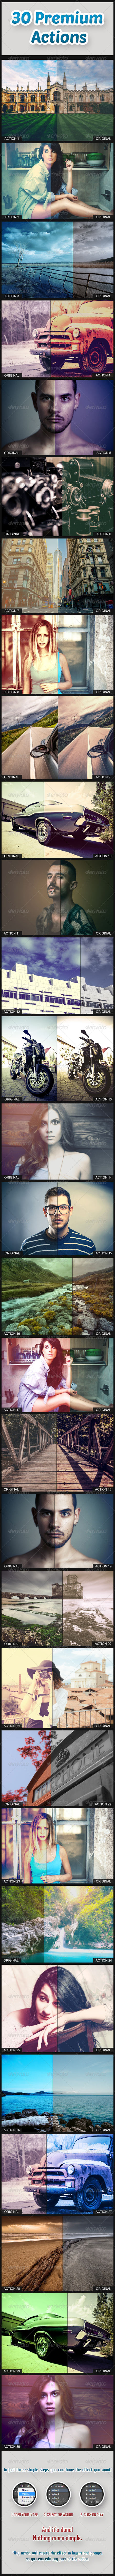 GraphicRiver 30 Premium Actions 8637258